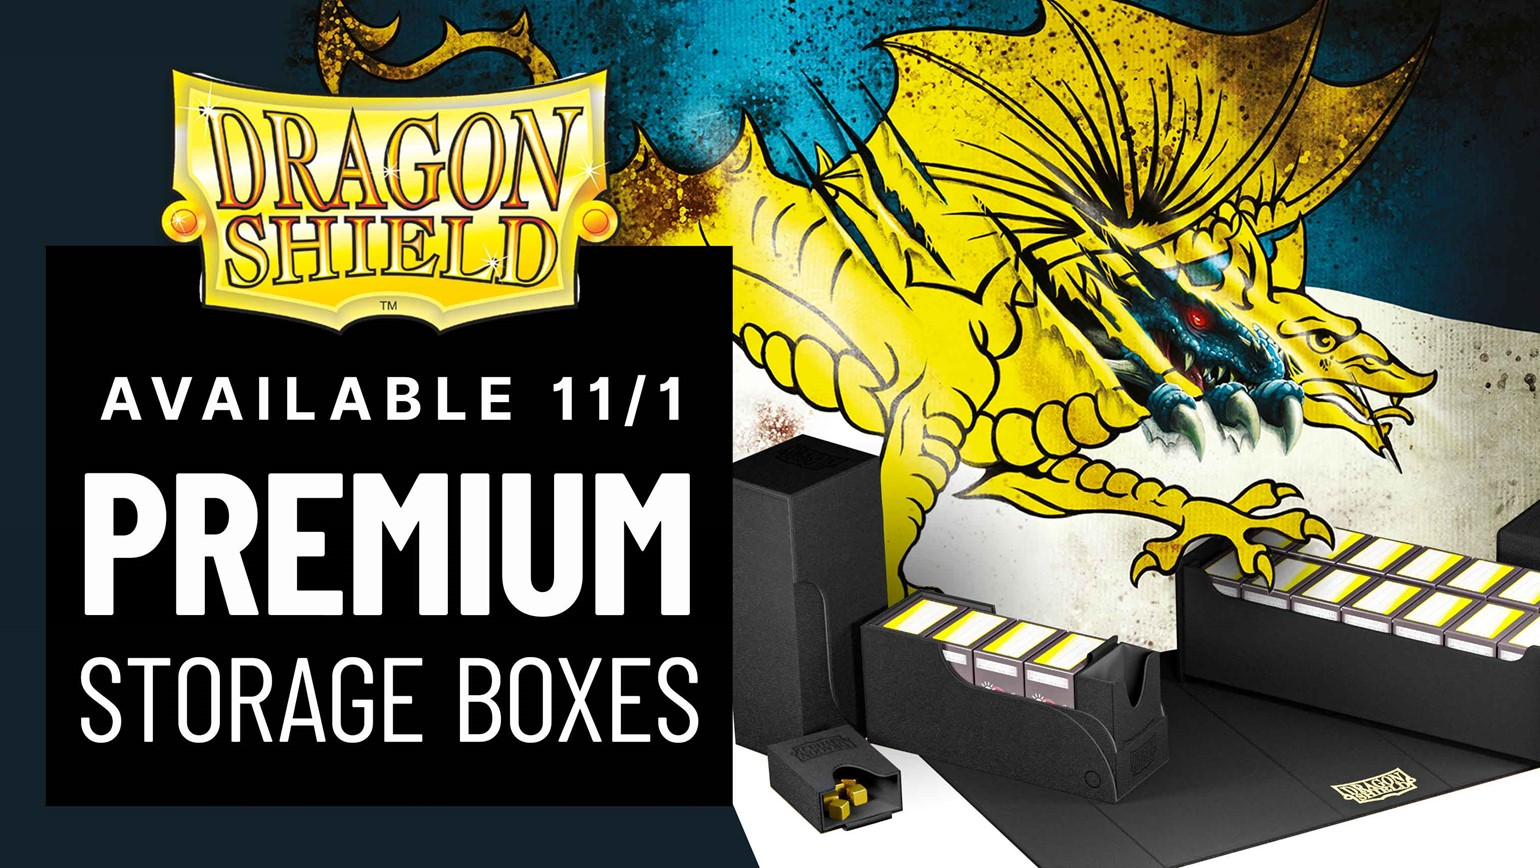 New Premium Storage Boxes from Dragon Shield Arrive Friday, 11/1